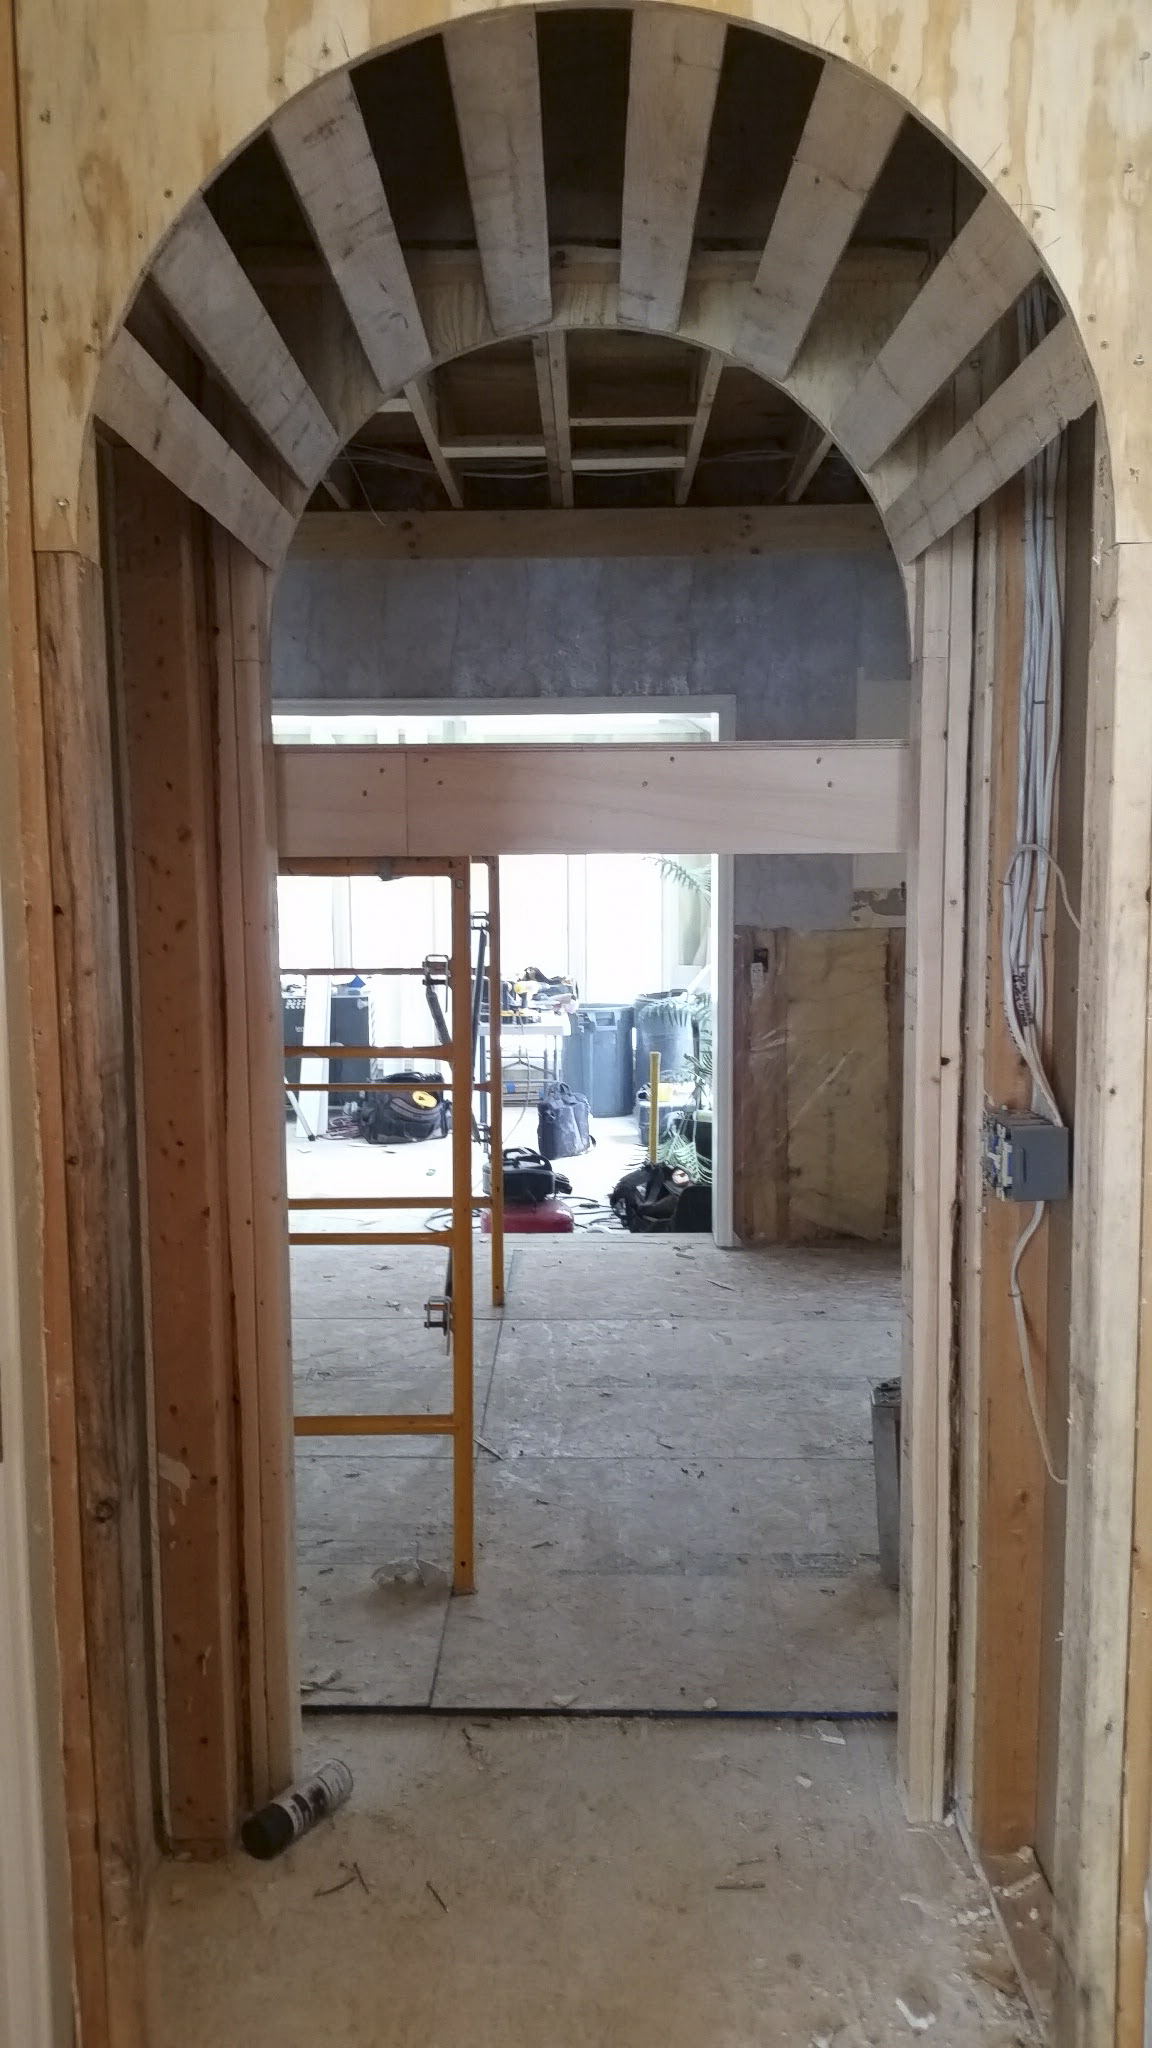 Arched opening framed.